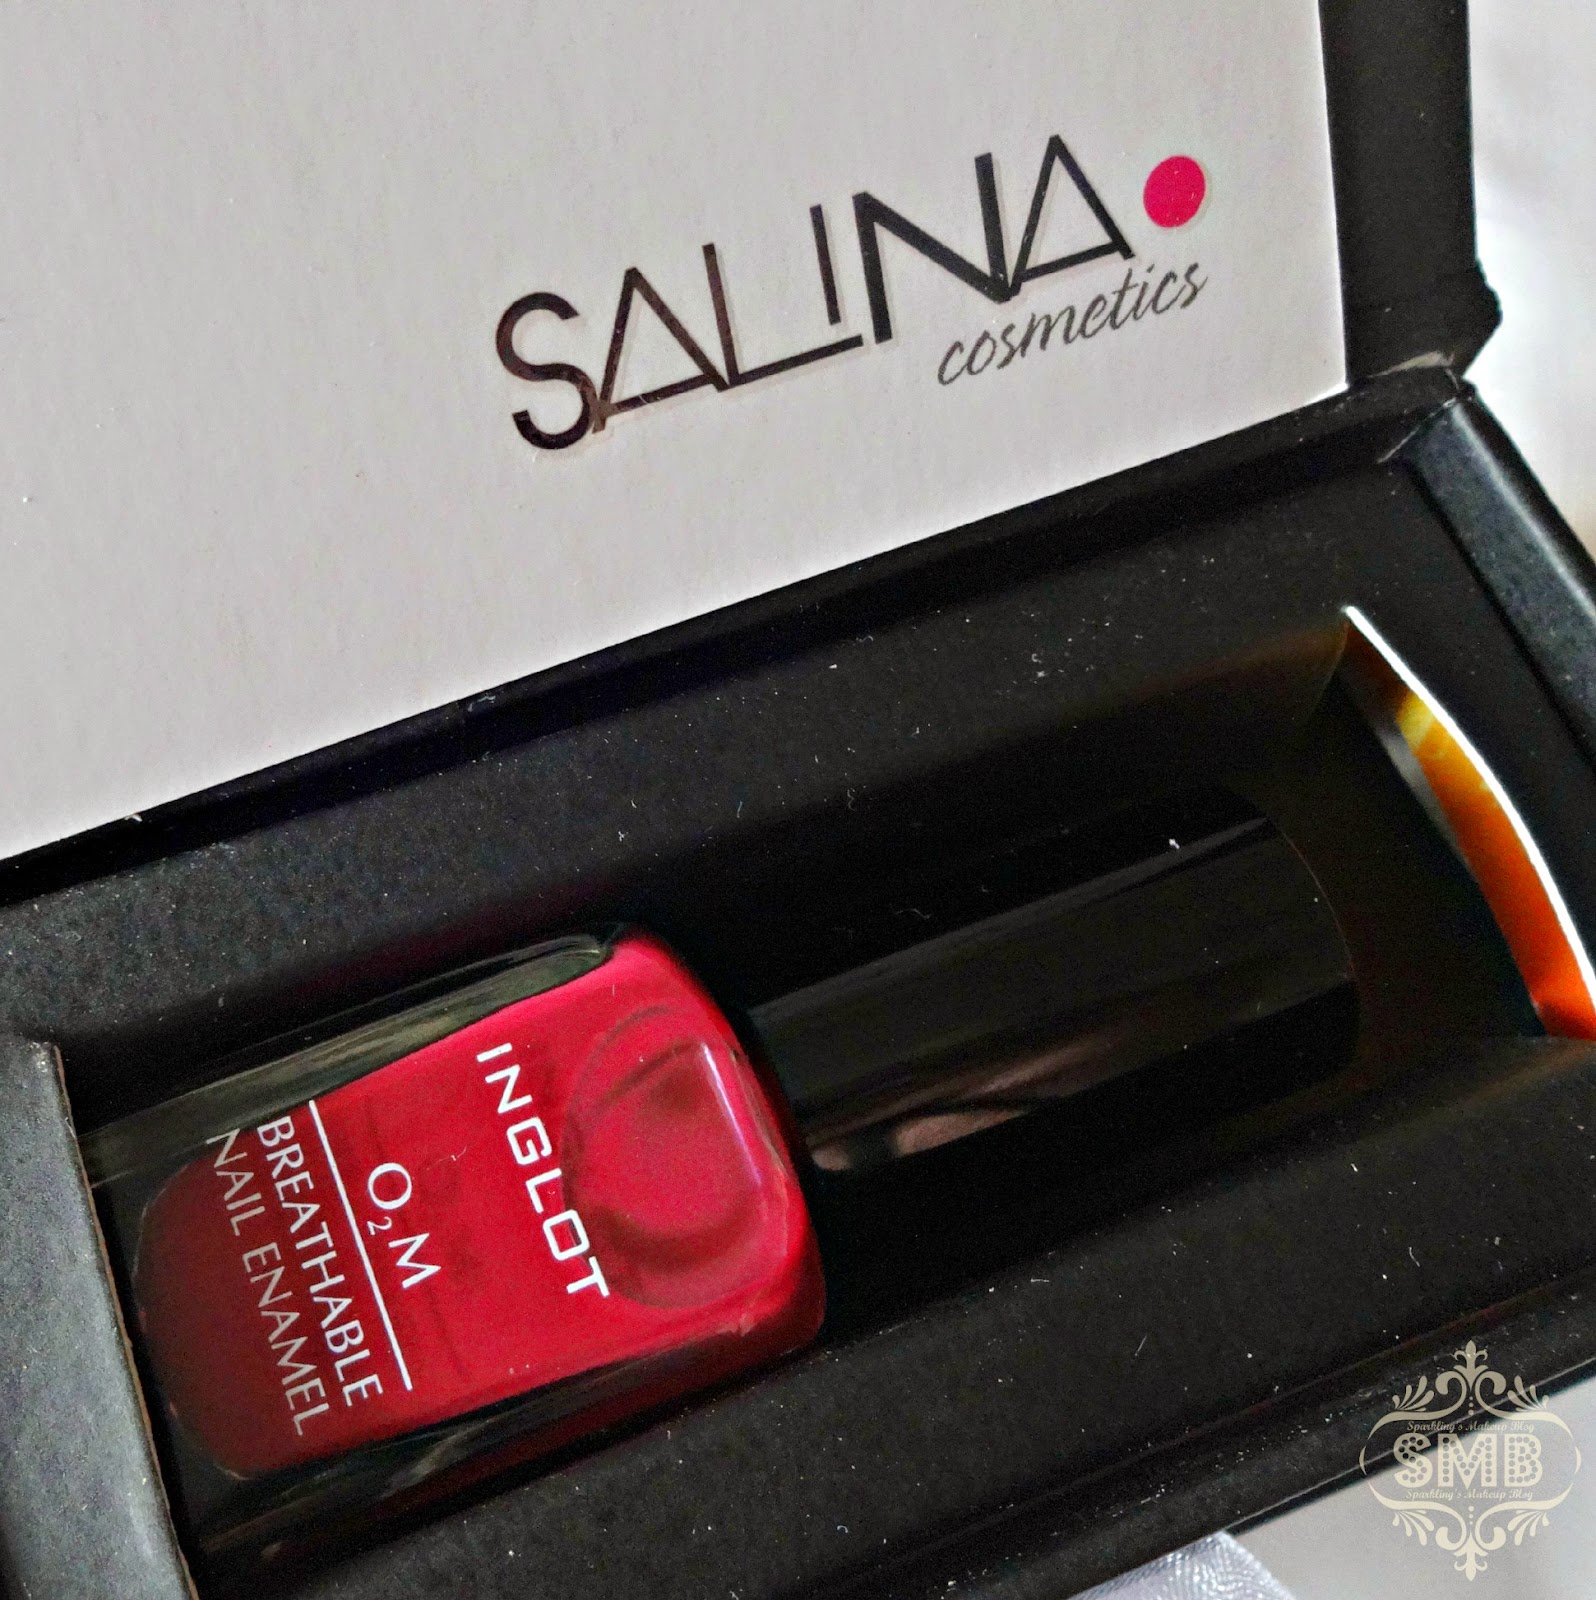 Salina cosmetics Swatch #689 breathable nail polish